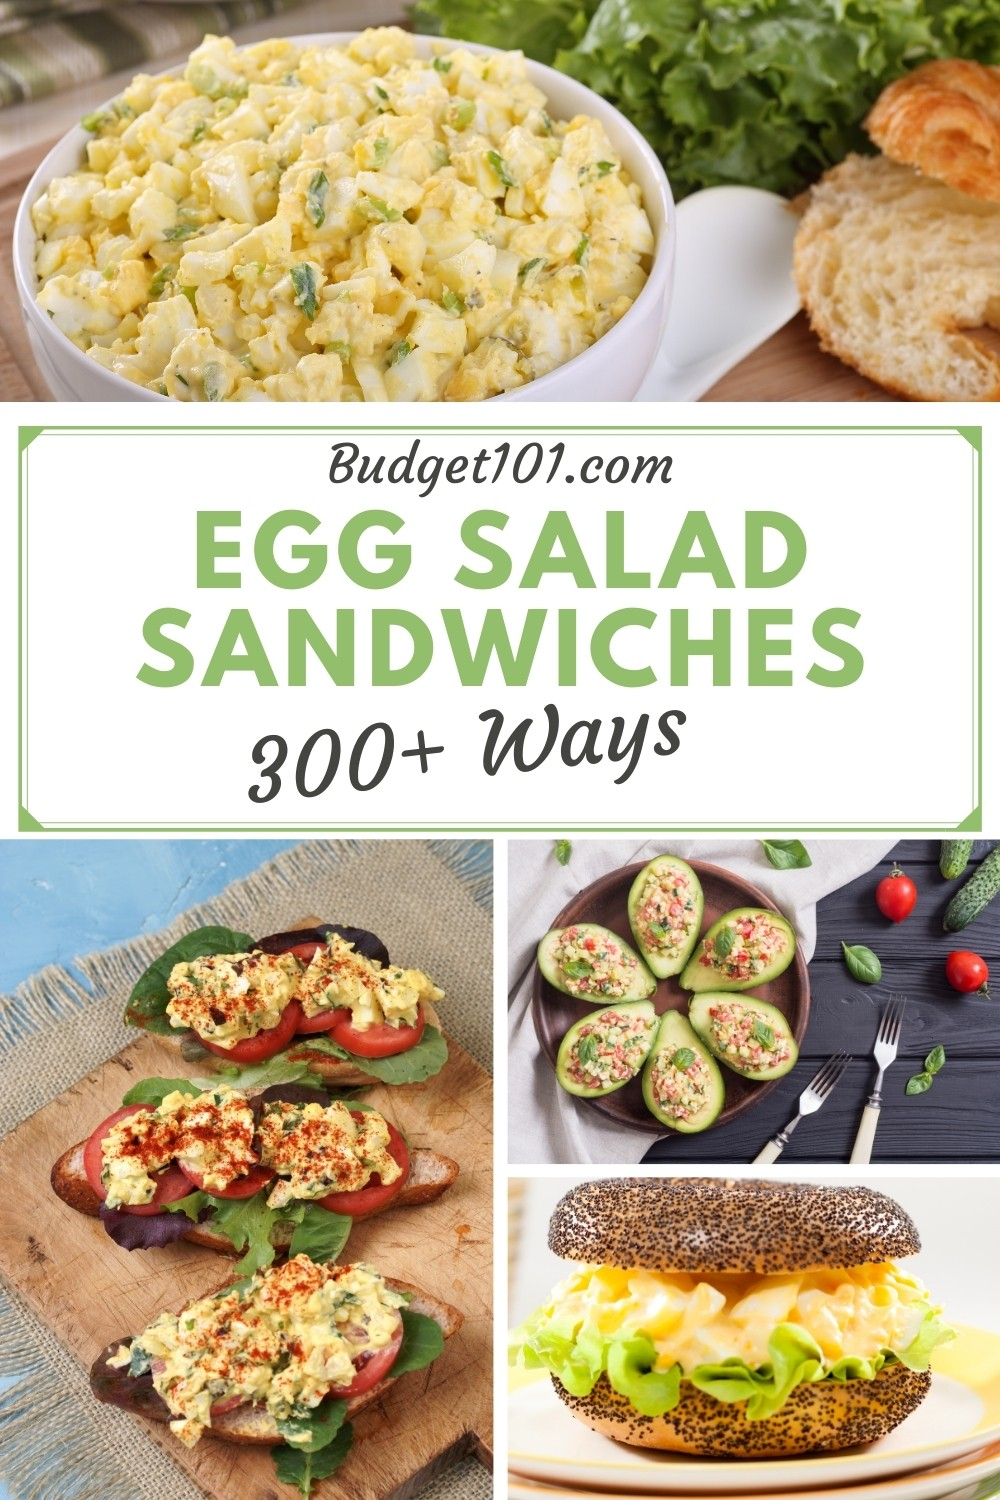 Egg salad doesn't have to be boring! Here are 300+ different flavor combination ideas to spruce up Egg Salad Sandwiches #eggsalad #MYO #DirtCheap #Frugal #LunchIdeas #EggSaladSandwich #WhatsForLunch #homemade